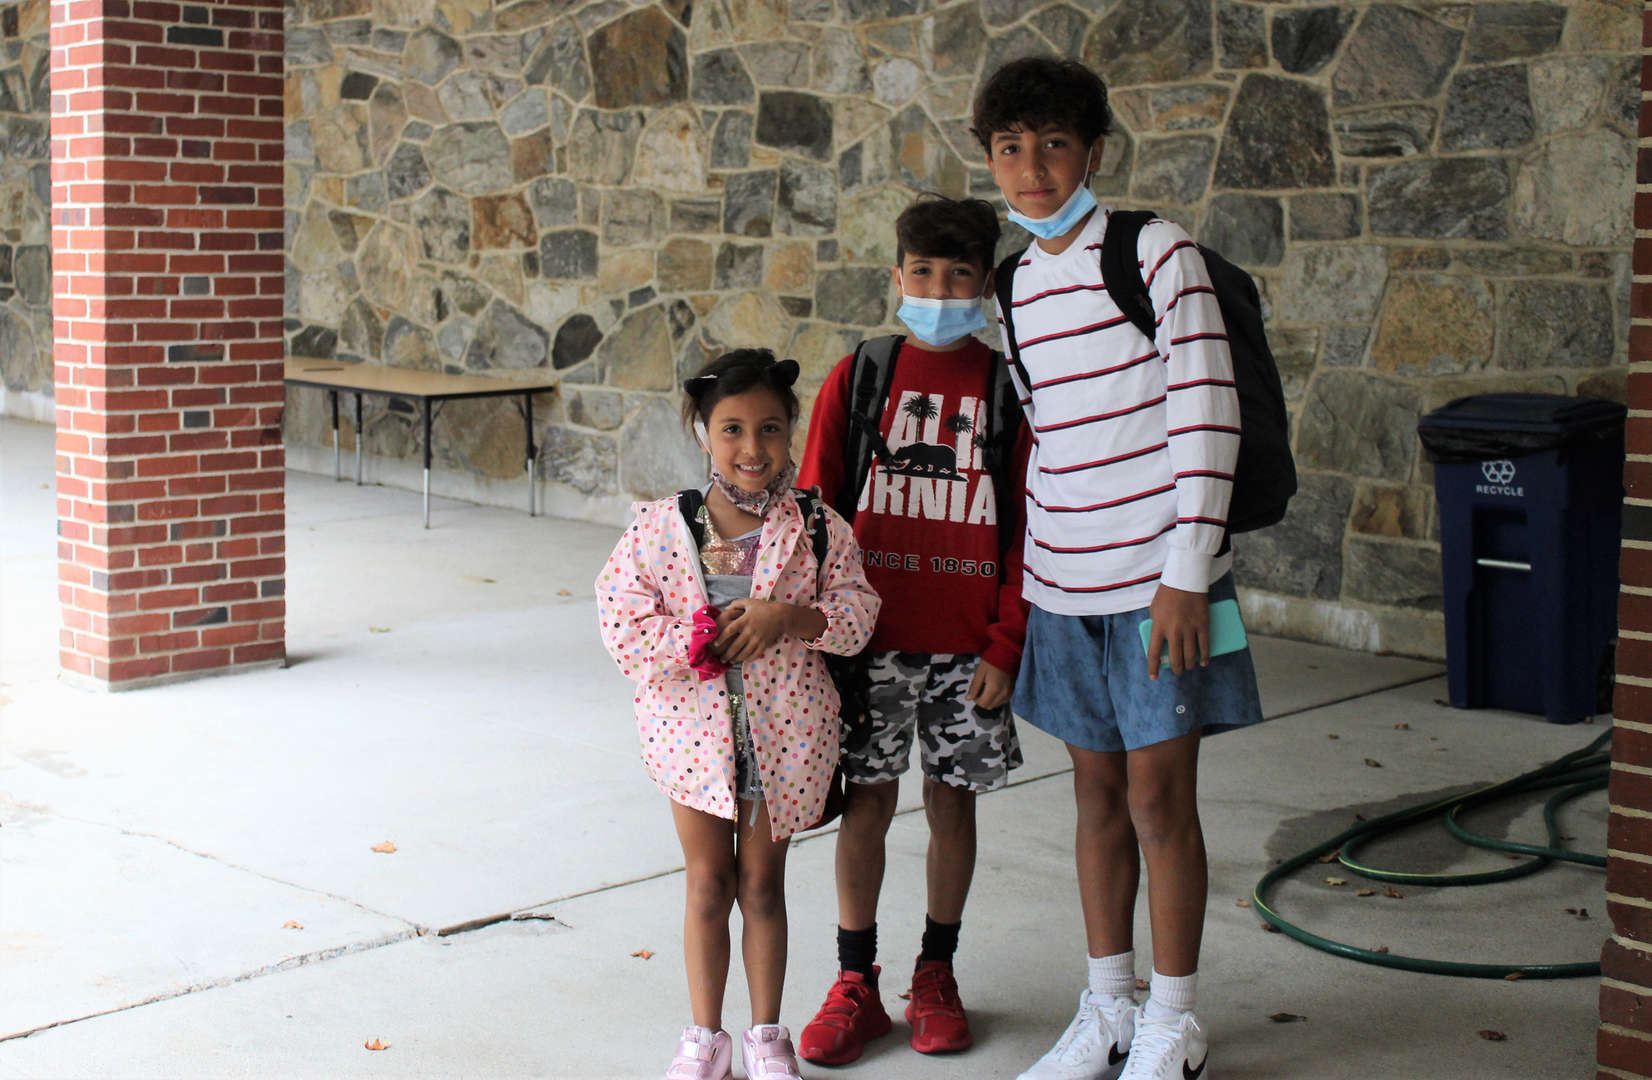 Three siblings pose for a photo before entering school.